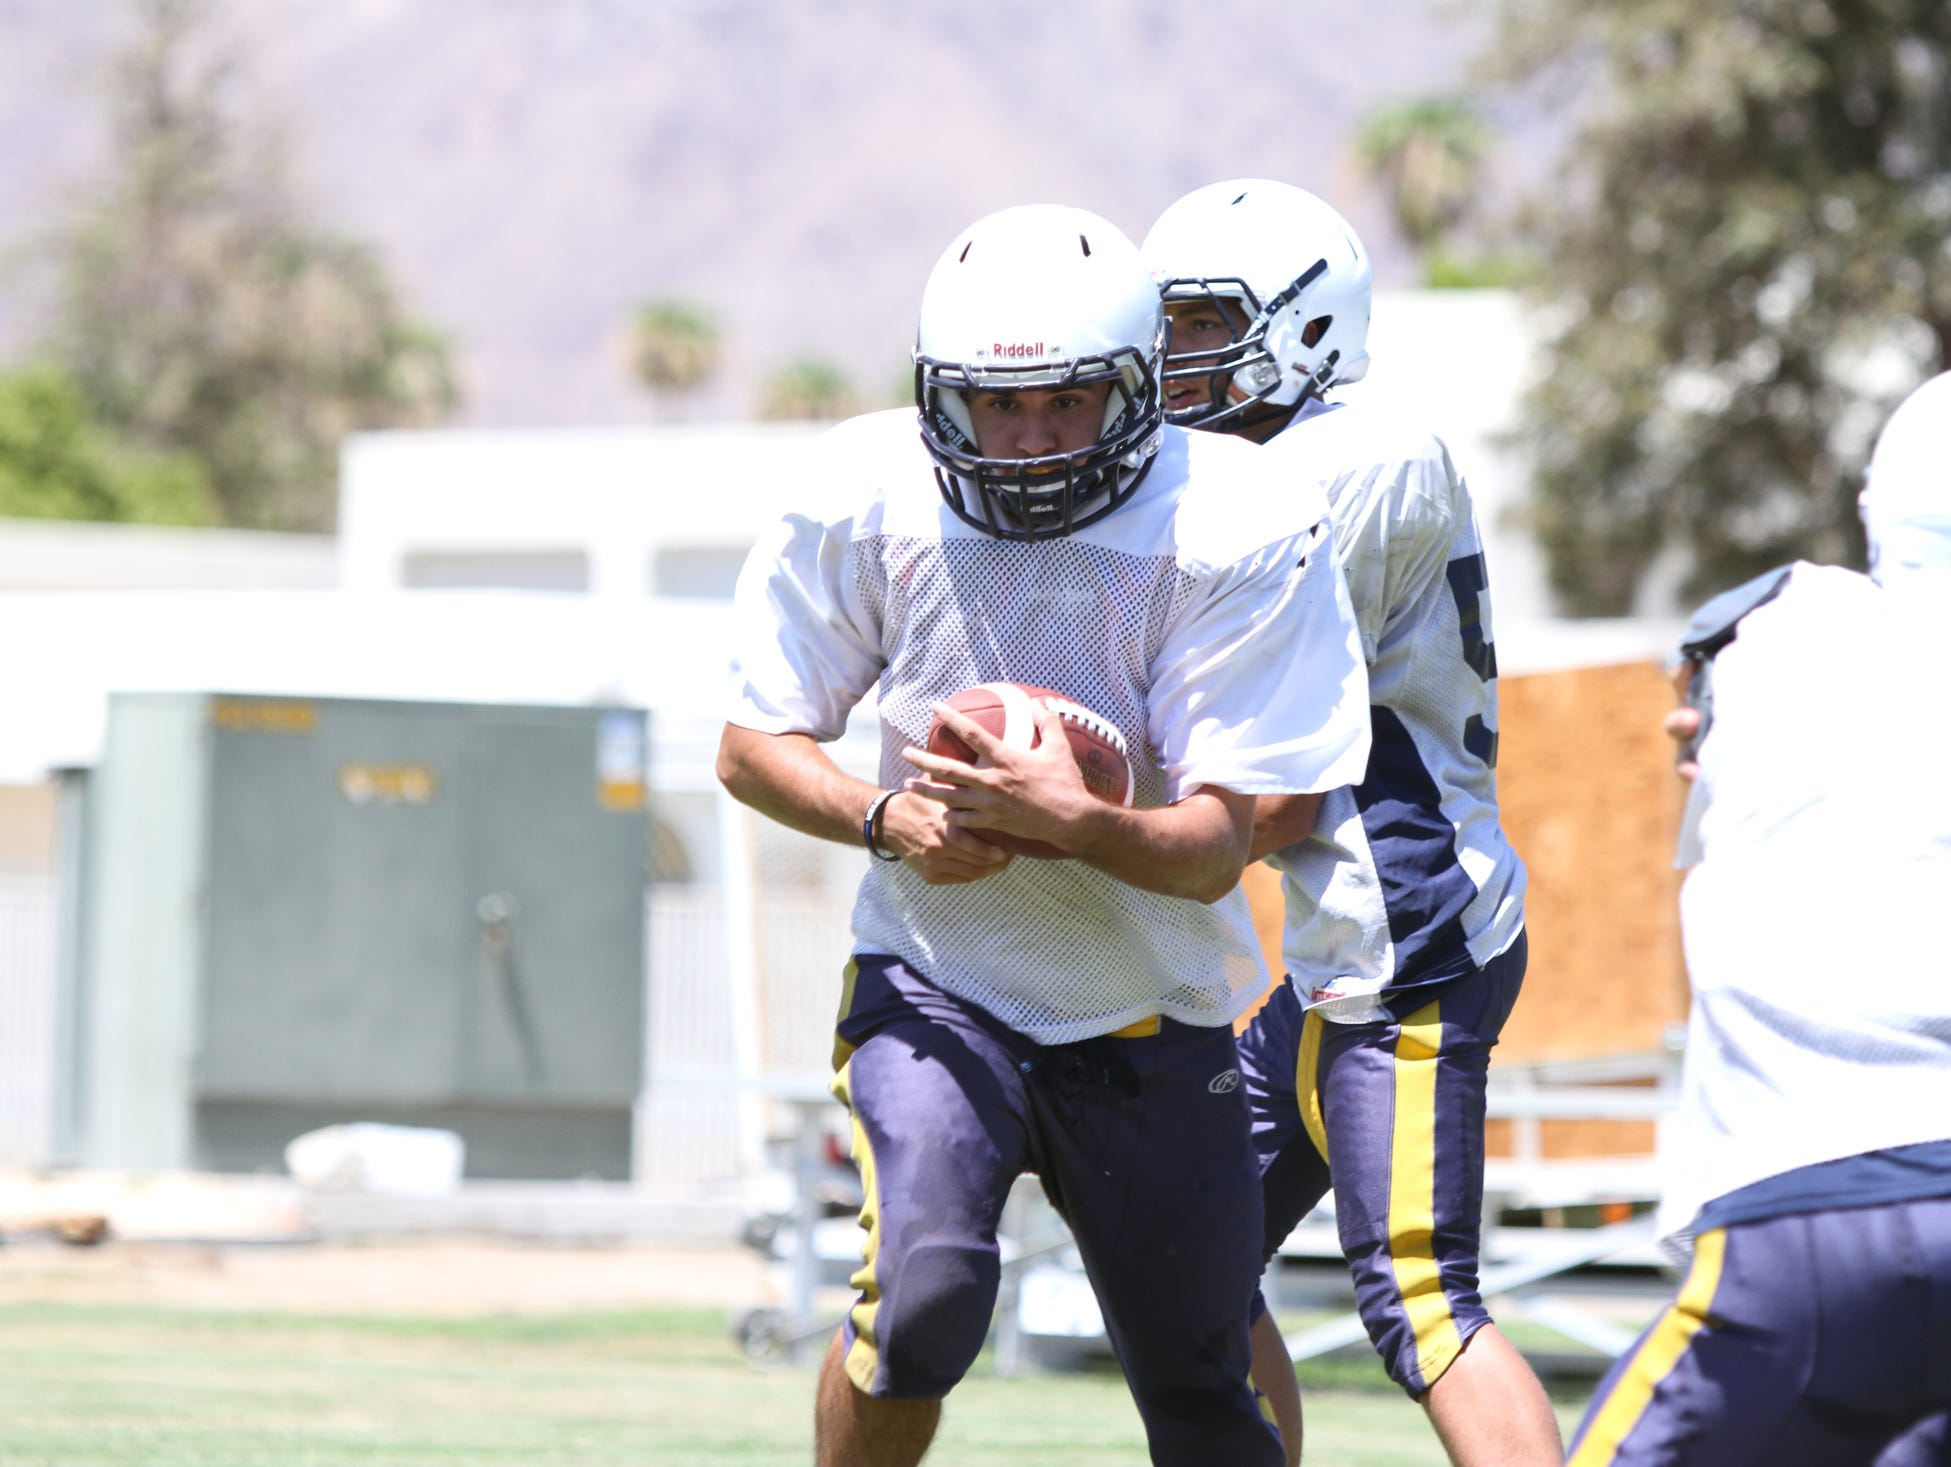 08/17/16 Taya Gray, Special to The Desert Sun Desert Chapel's running back Chris Cain runs the ball during practice at the school in Palm Springs on Wednesday, August 17, 2016.